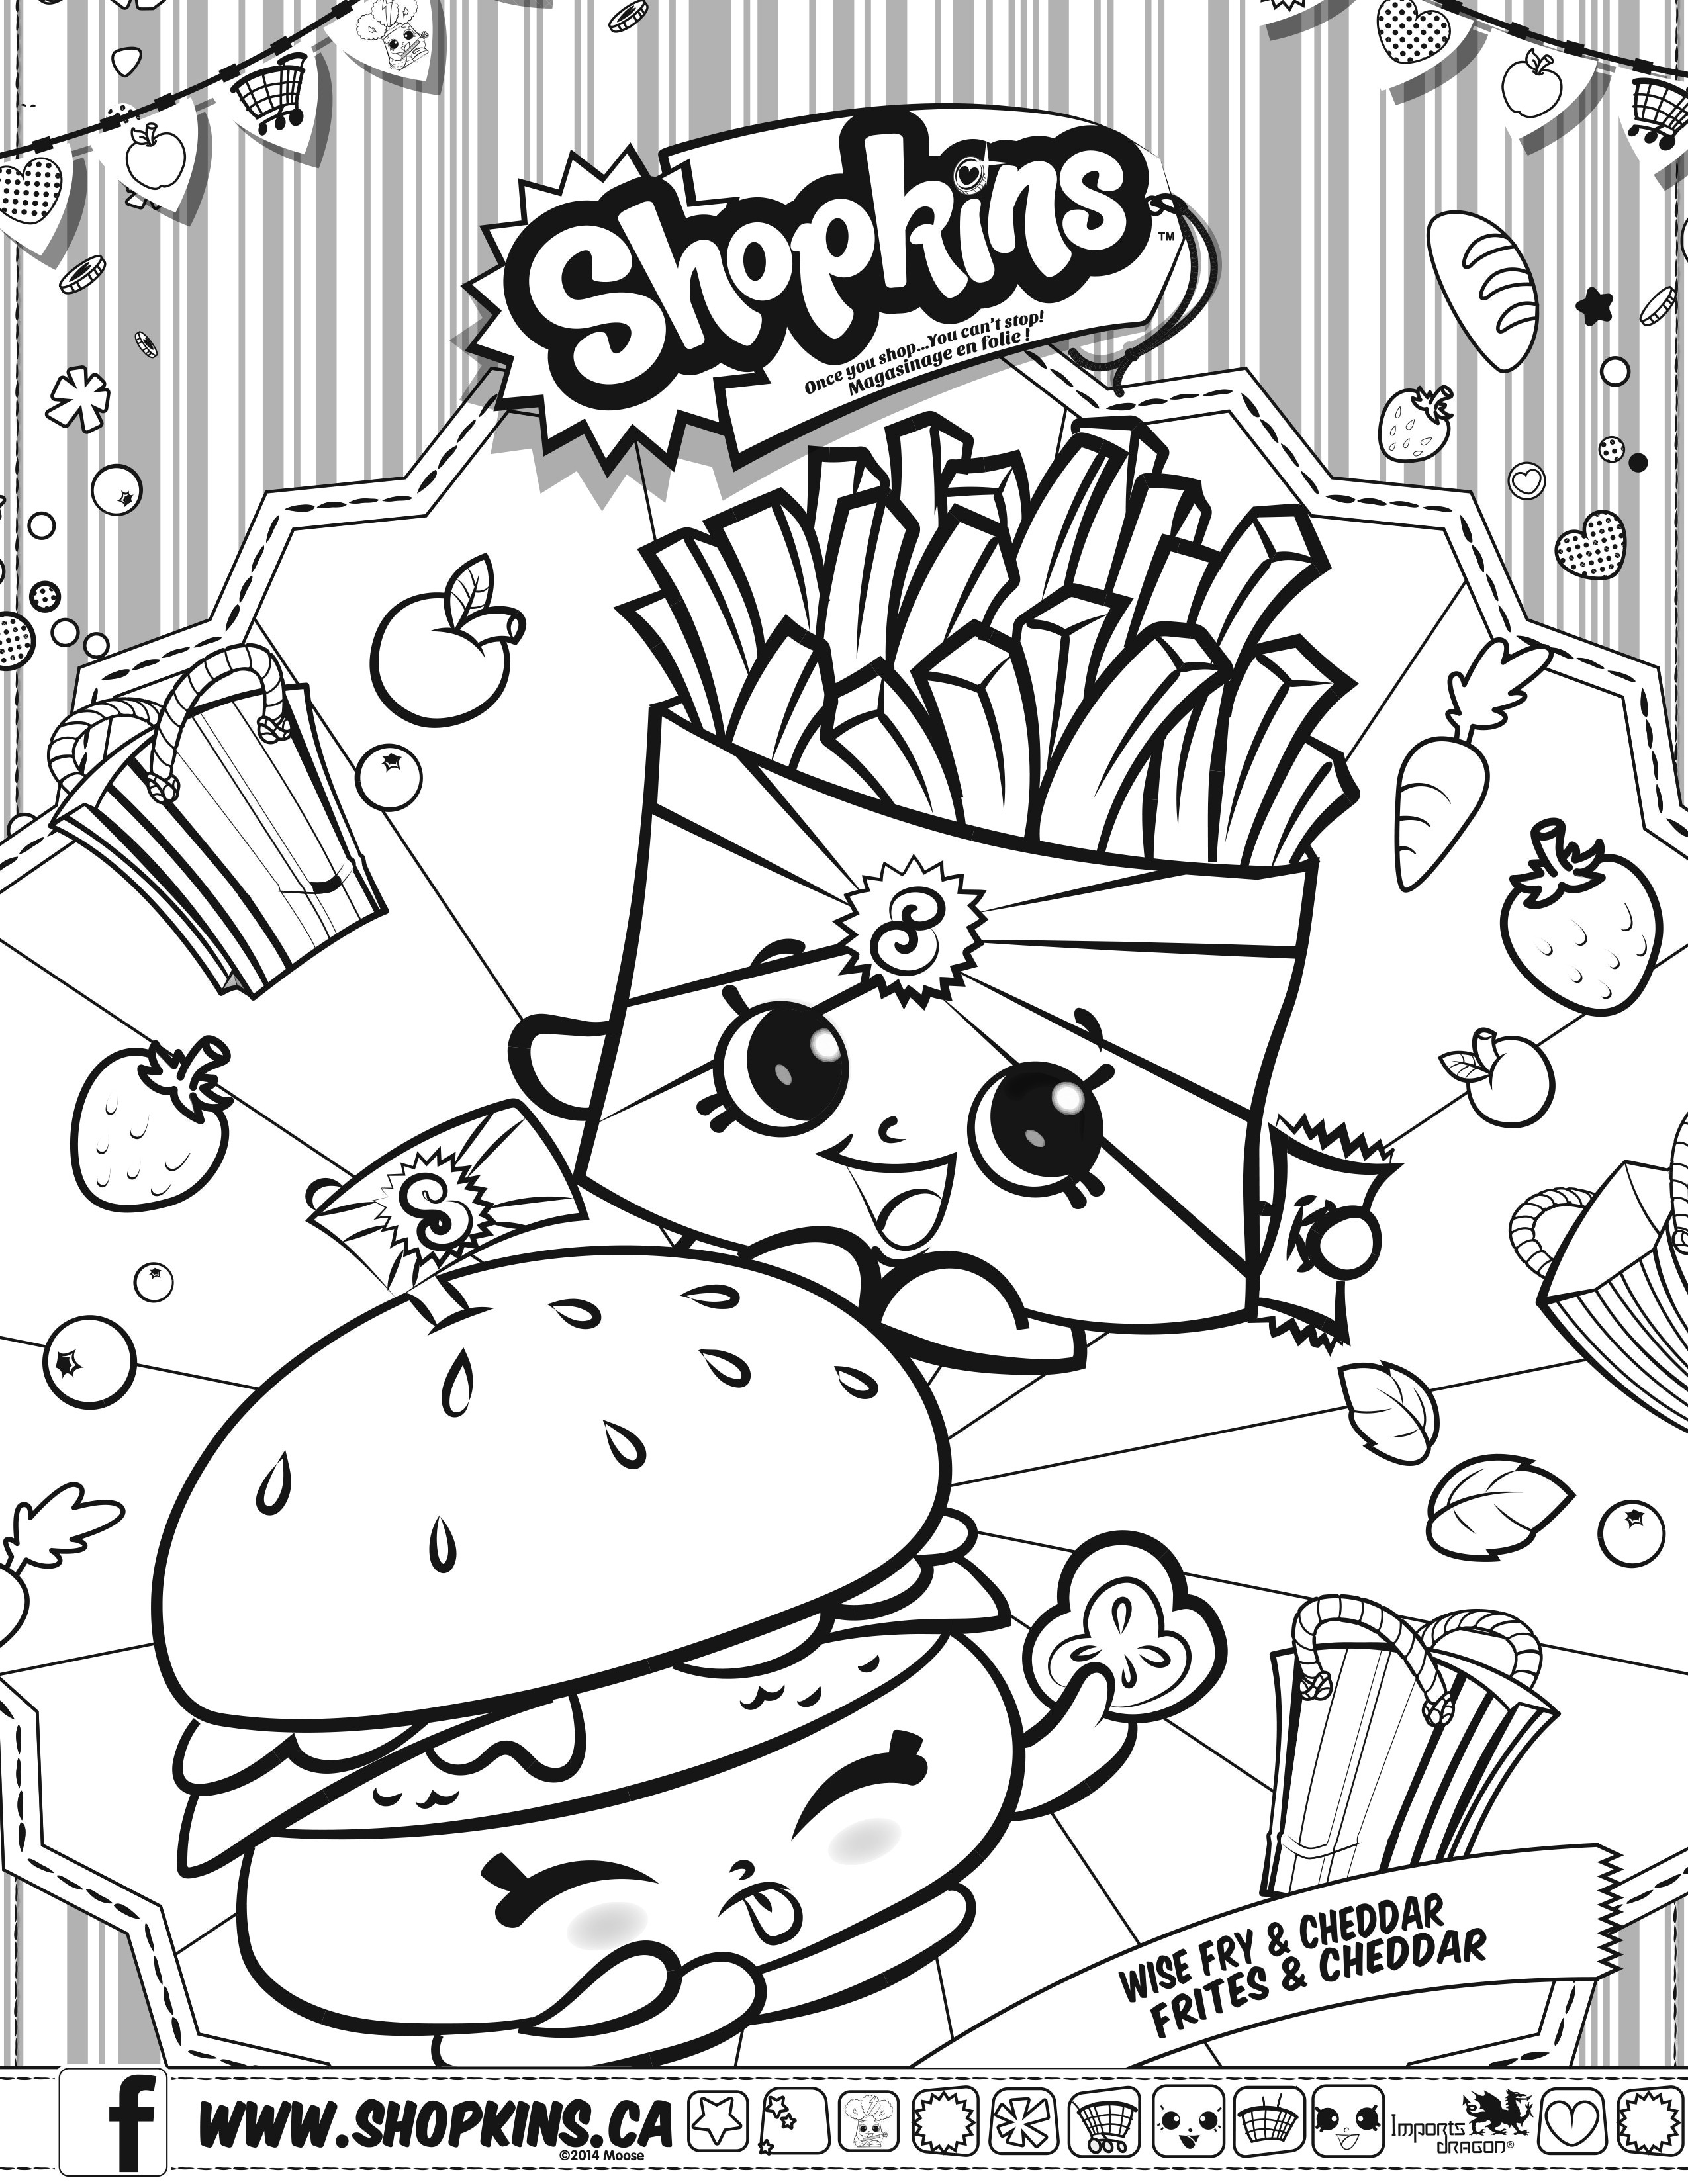 Pictures Of Shopkins Coloring Pages at GetDrawings | Free ...